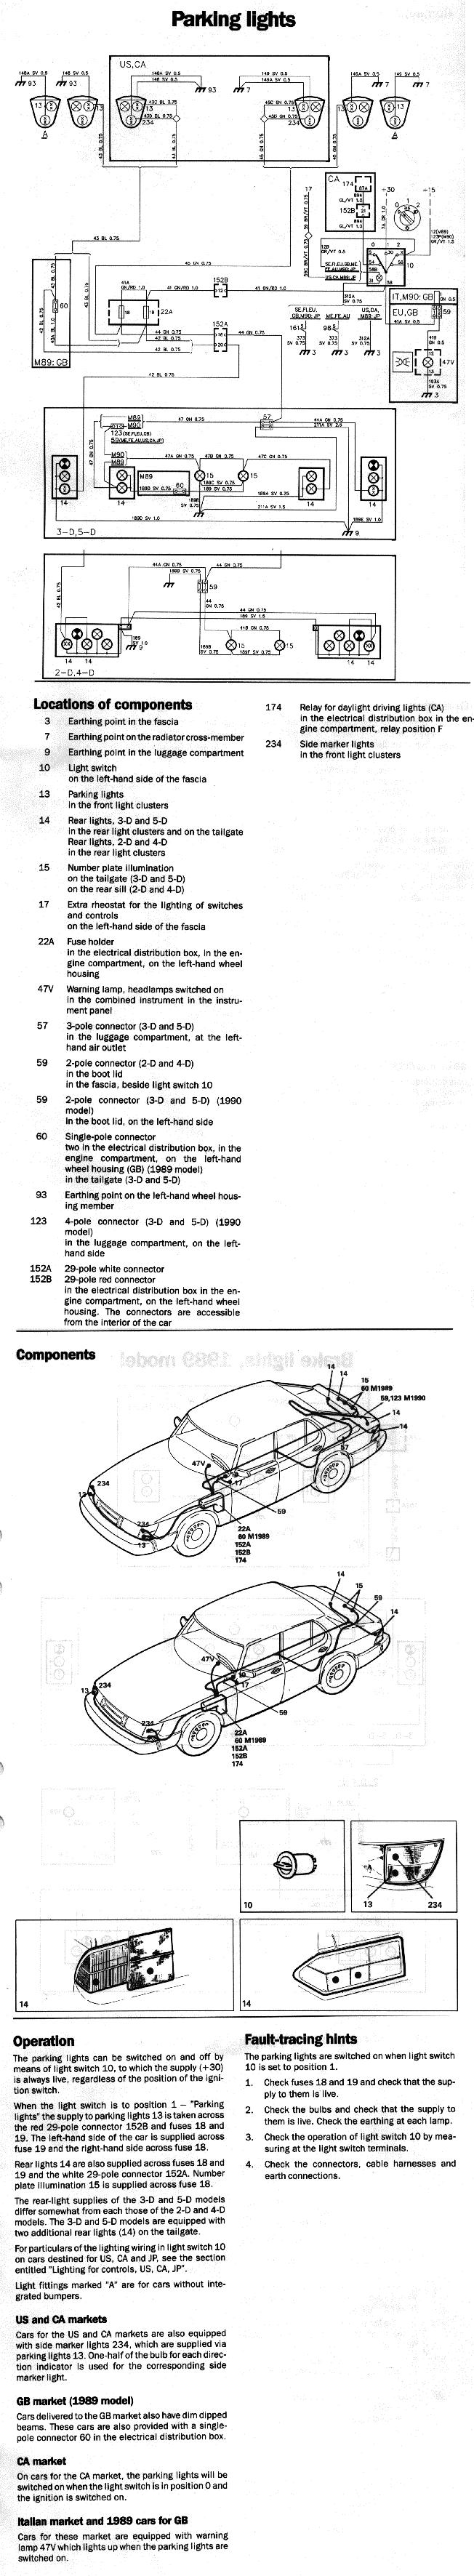 Electrical 900 89 90 Saab Ignition Wiring Diagram 88 Ezk System With Tachometer 1990 Model Battery Charging